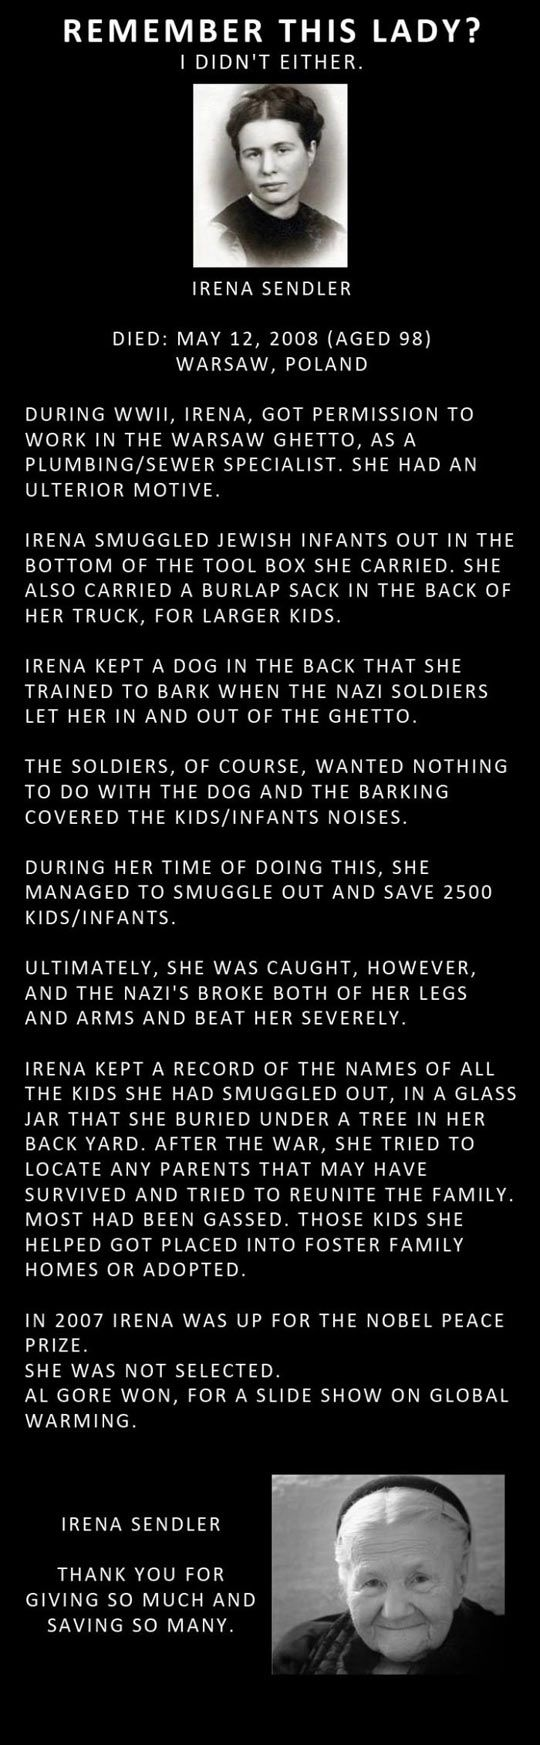 Definition of a true Hero. What a fearless & loving human being. She changed so many lives. Admiration is an understatement.